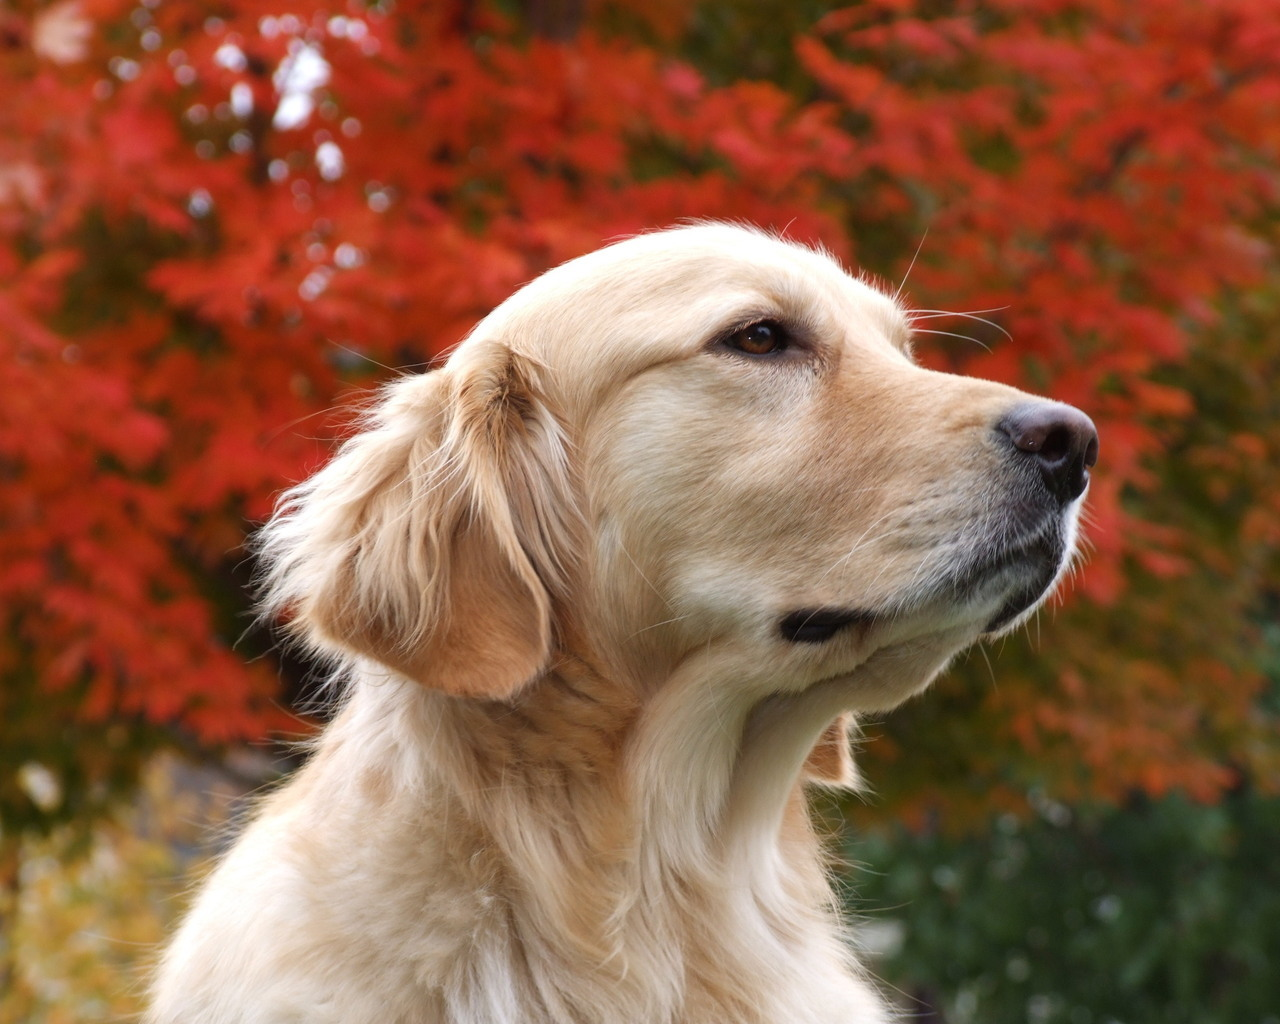 13309 download wallpaper Animals, Dogs screensavers and pictures for free